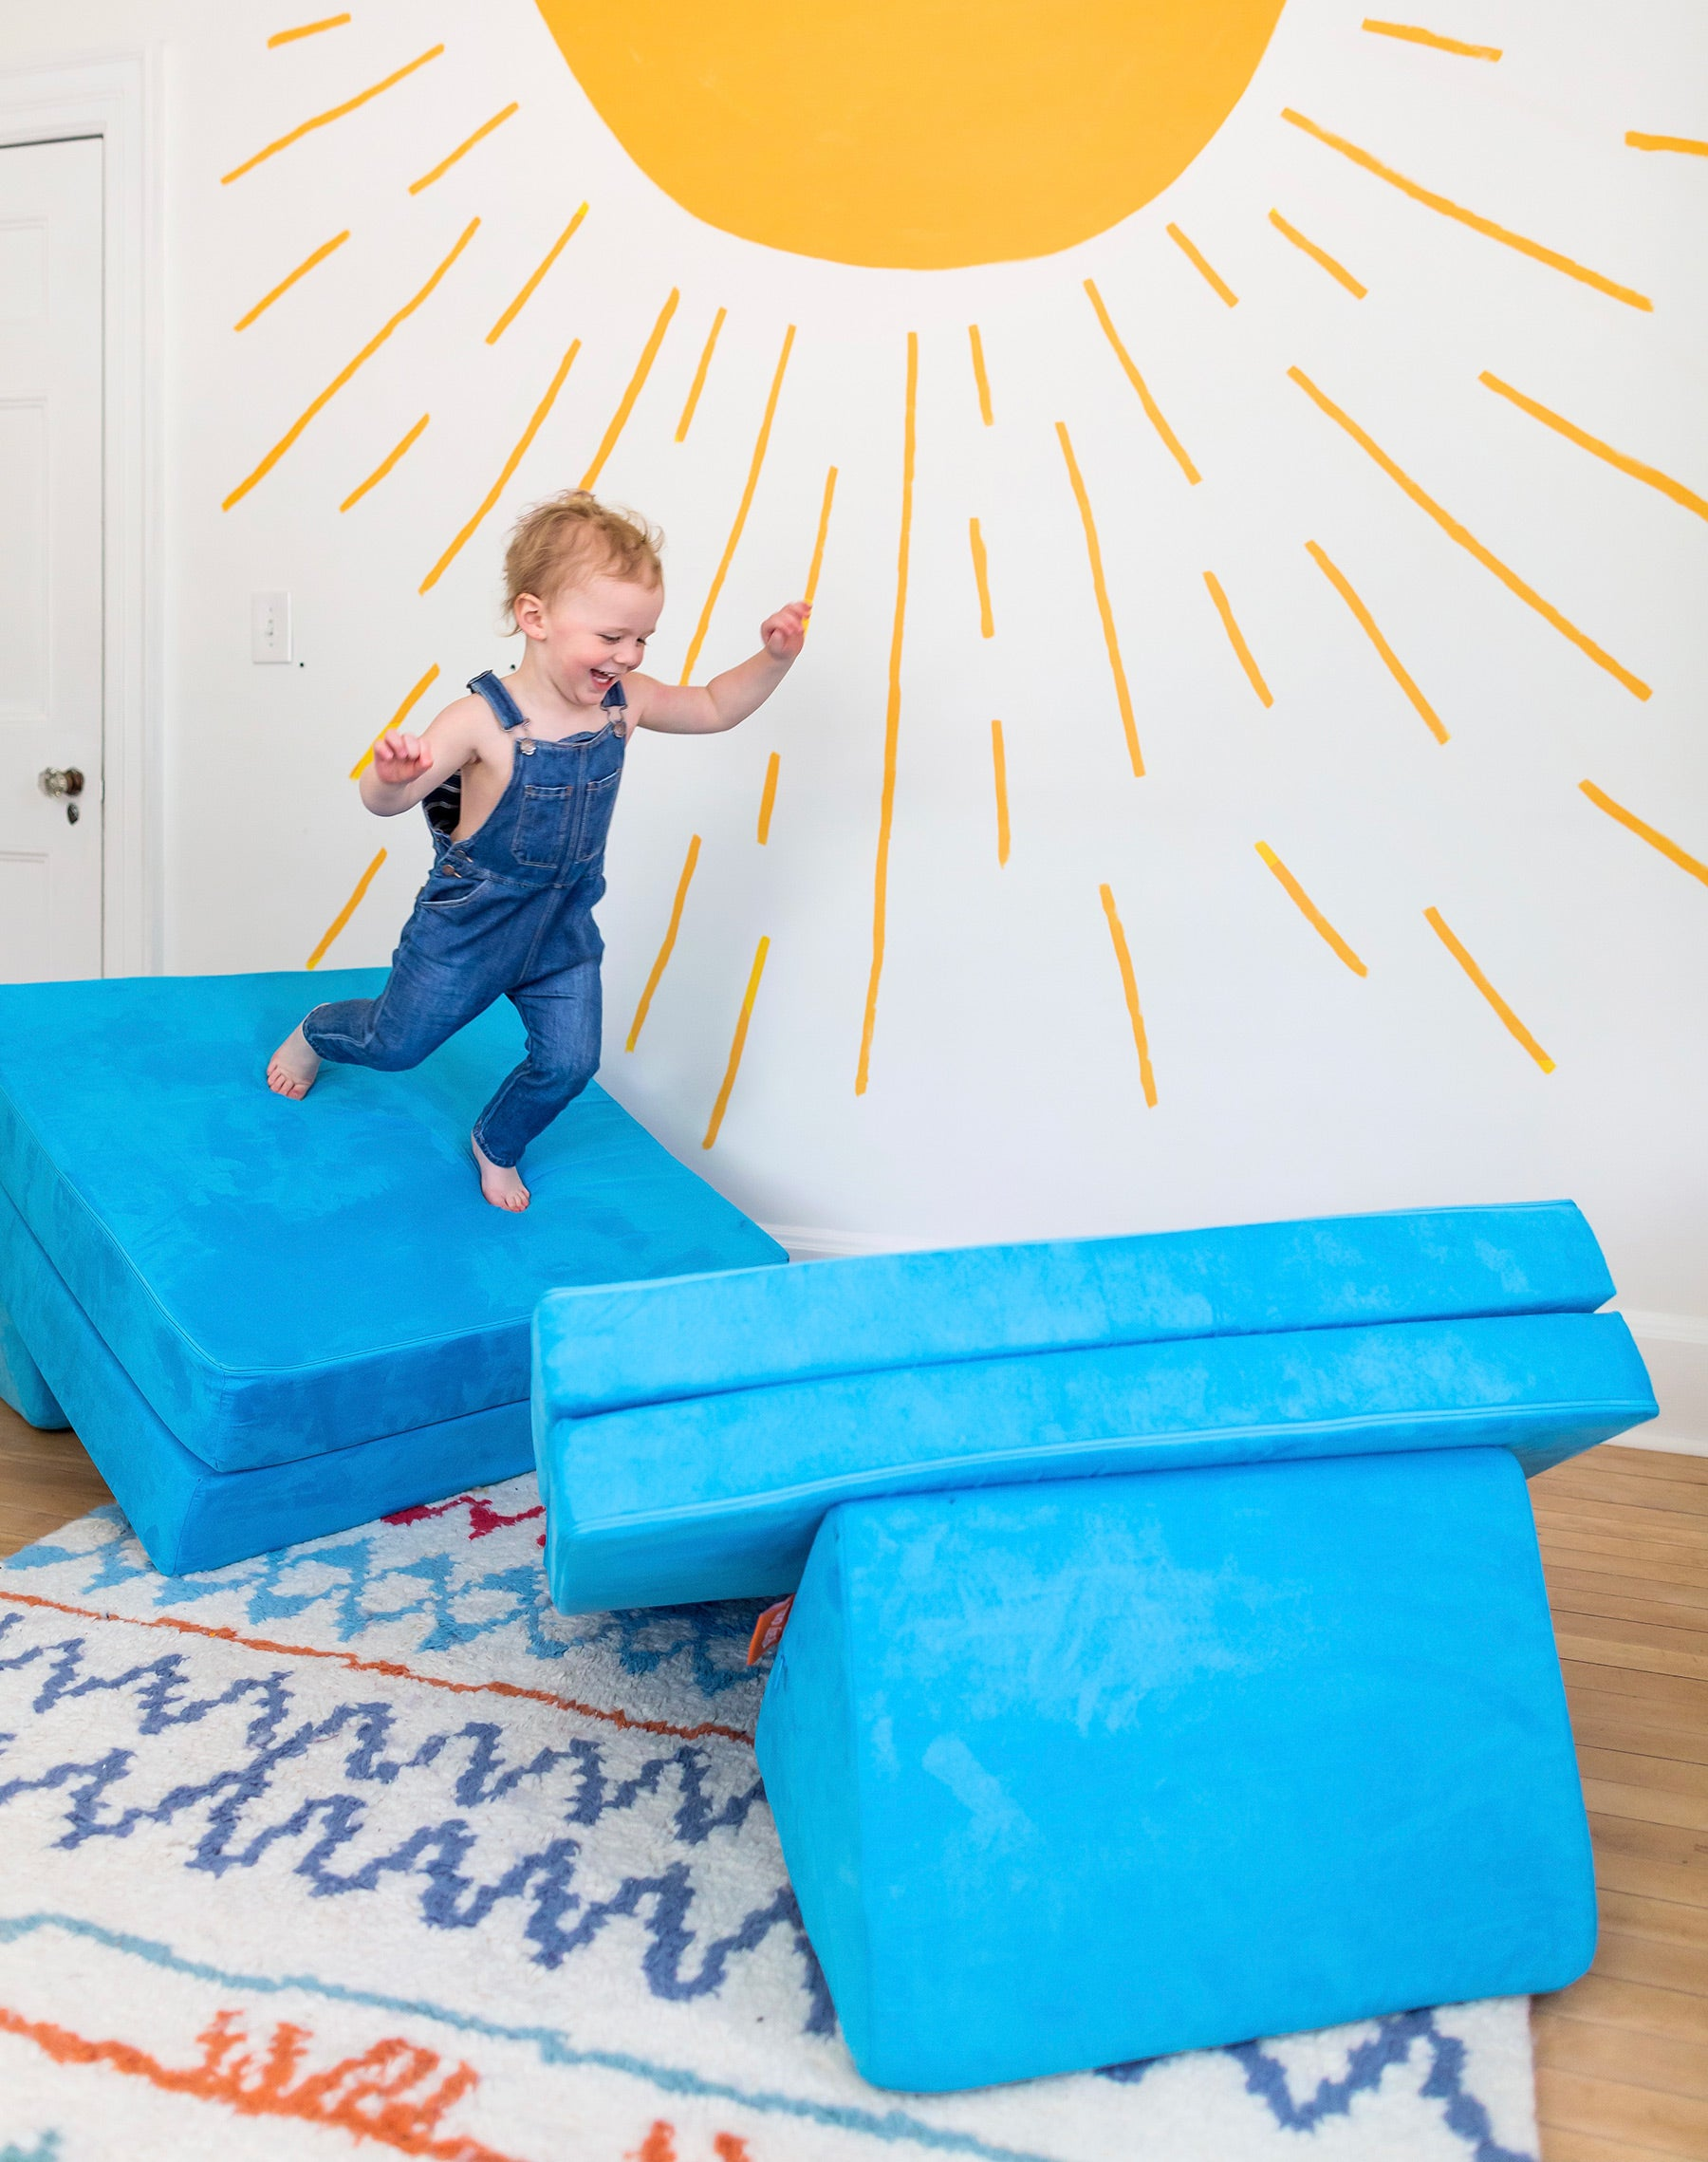 Toddler jumping between two pieces of aquamarine-colored Nugget, in front of bright yellow sunshine mural